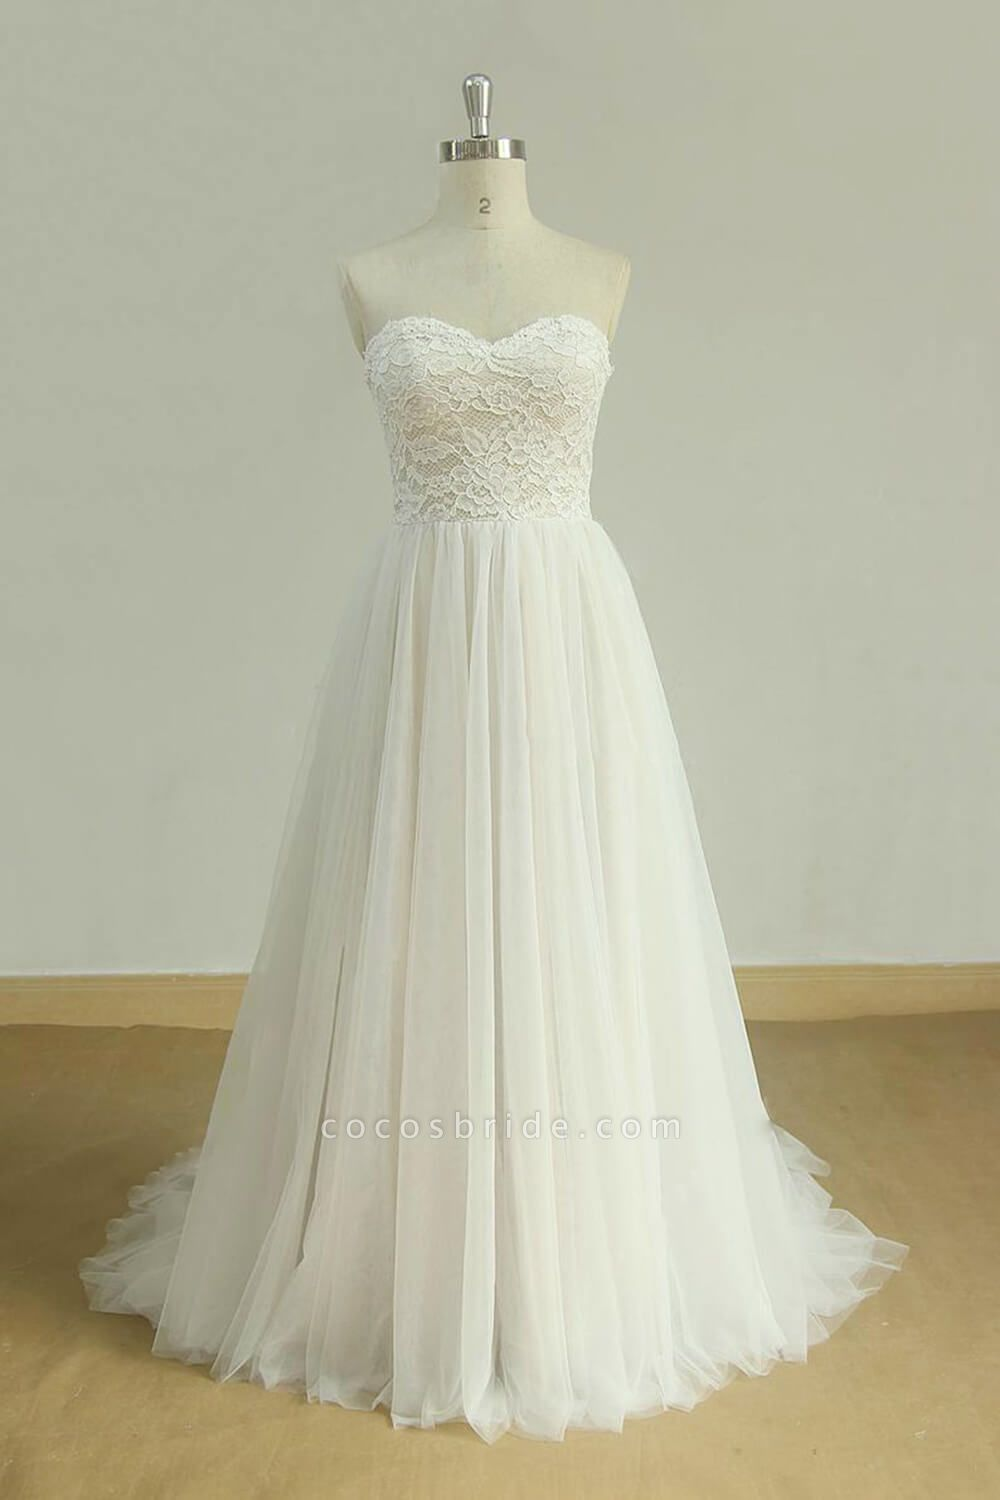 Detachable Lace-up Tulle A-line Wedding Dress